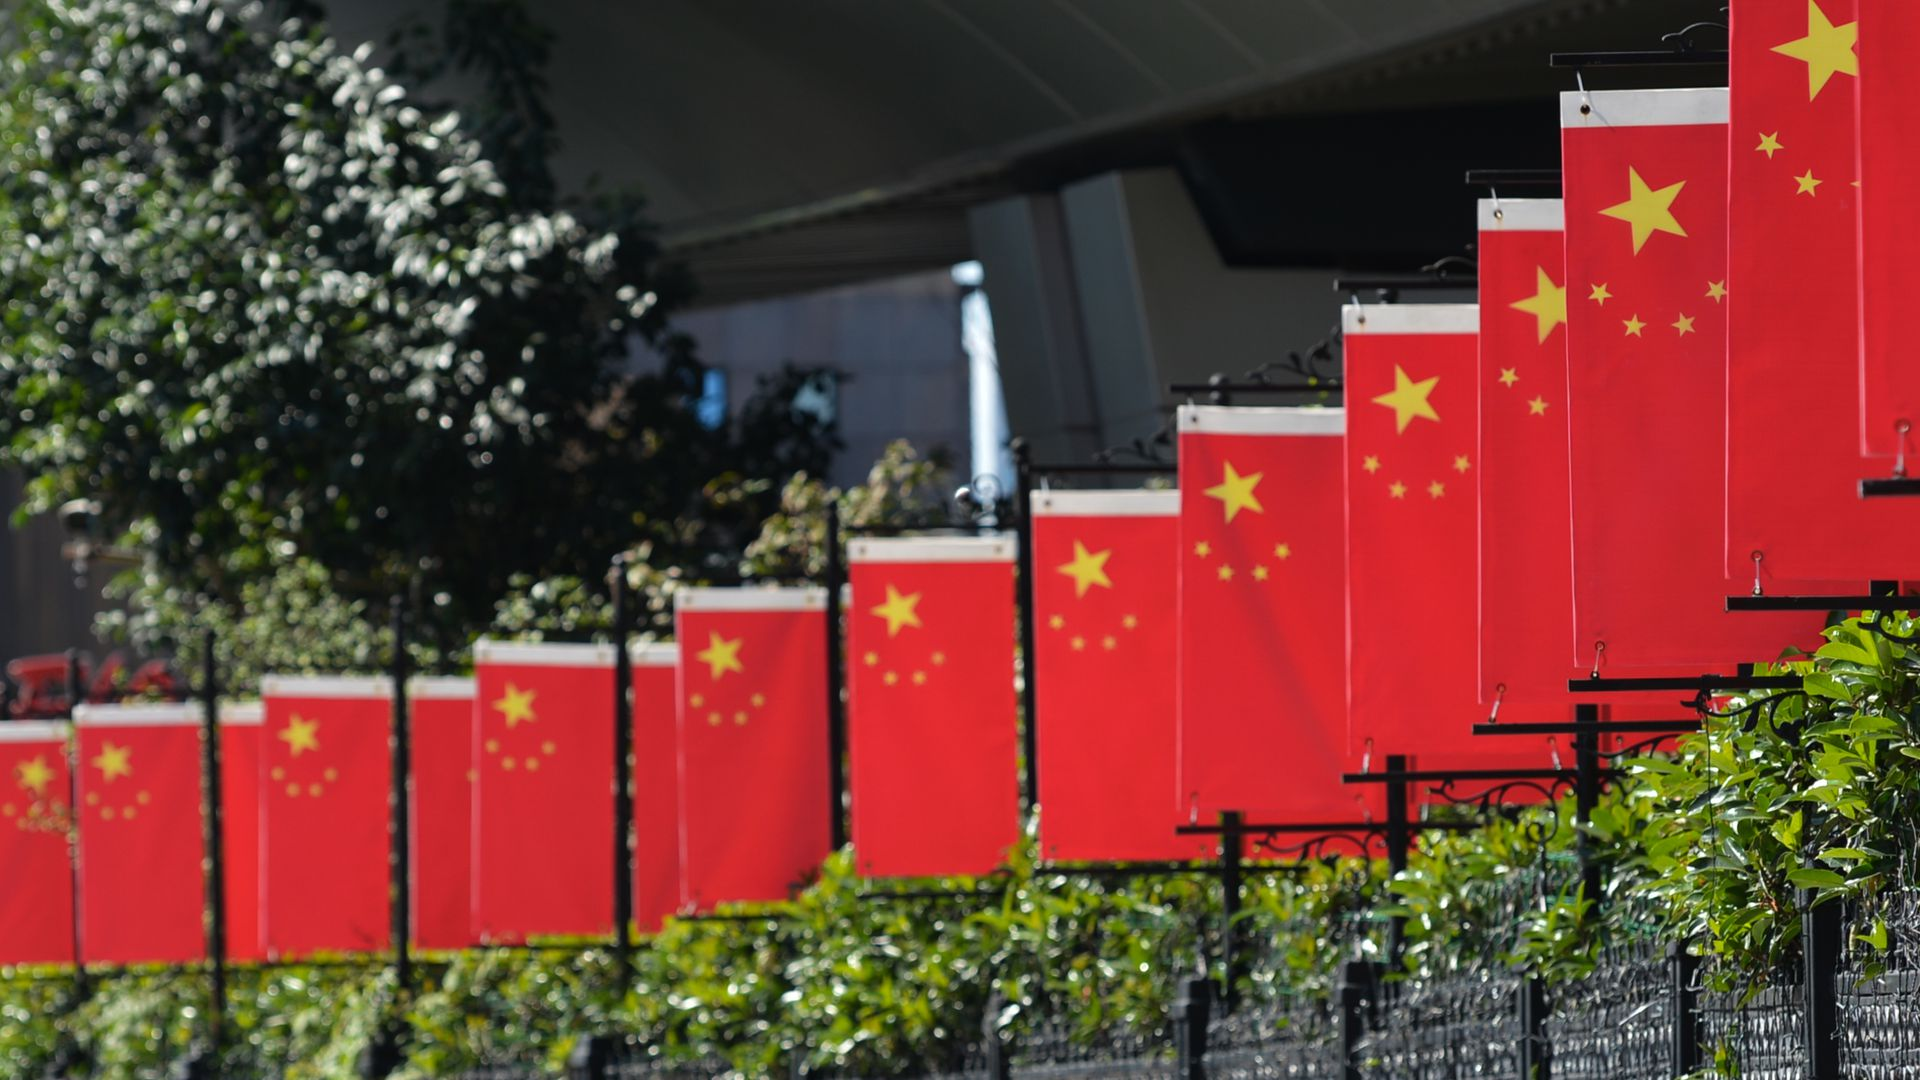 Chinese flags.